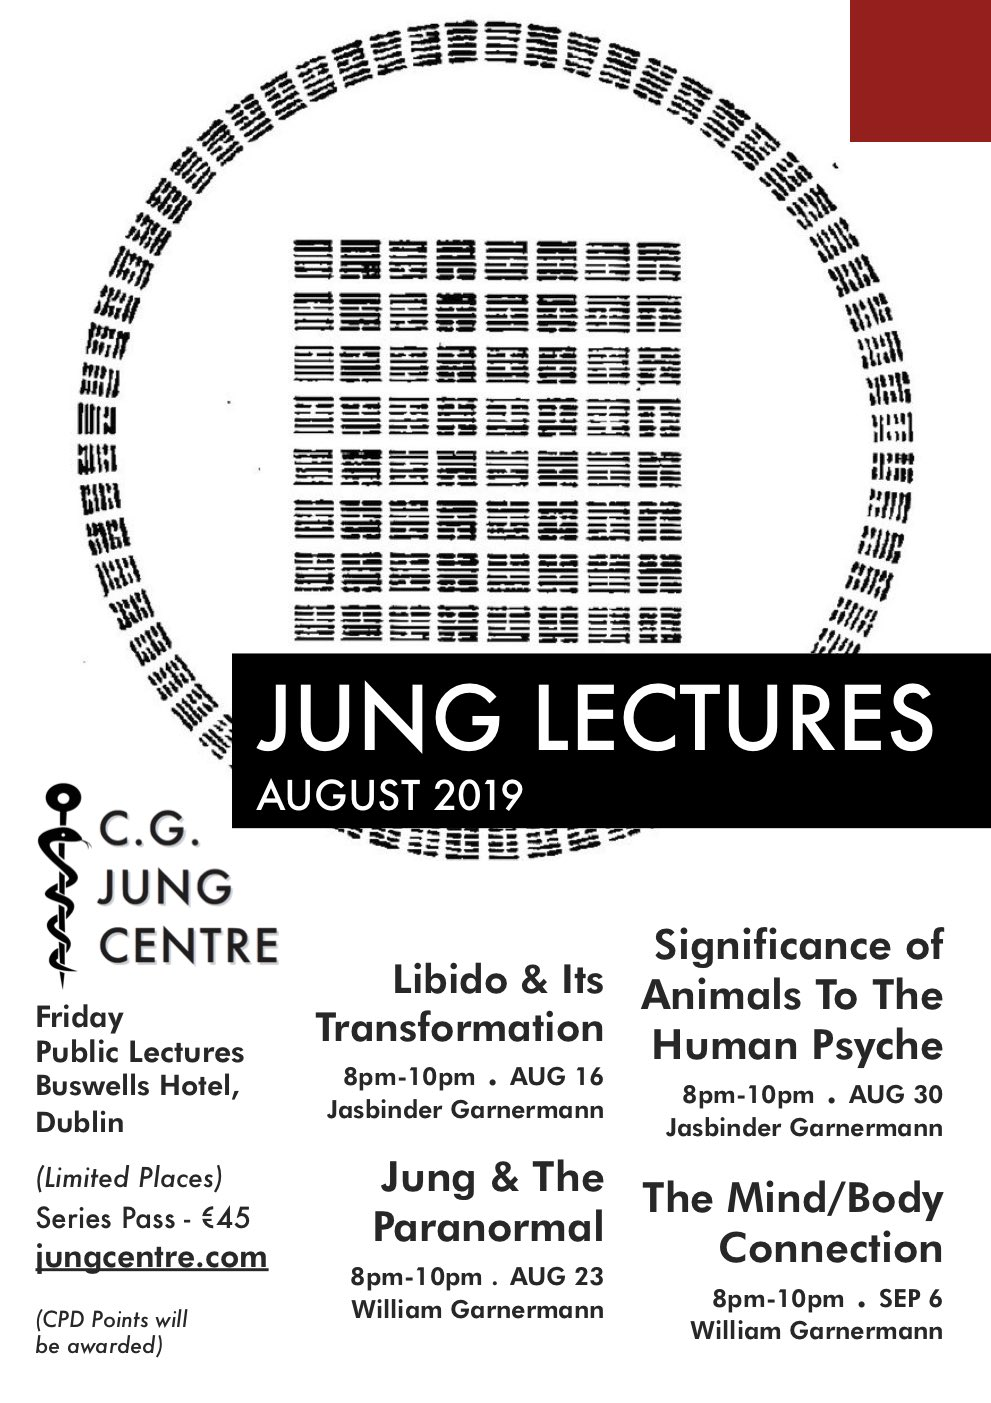 JUNG LECTURES August 2019 WEB.jpg